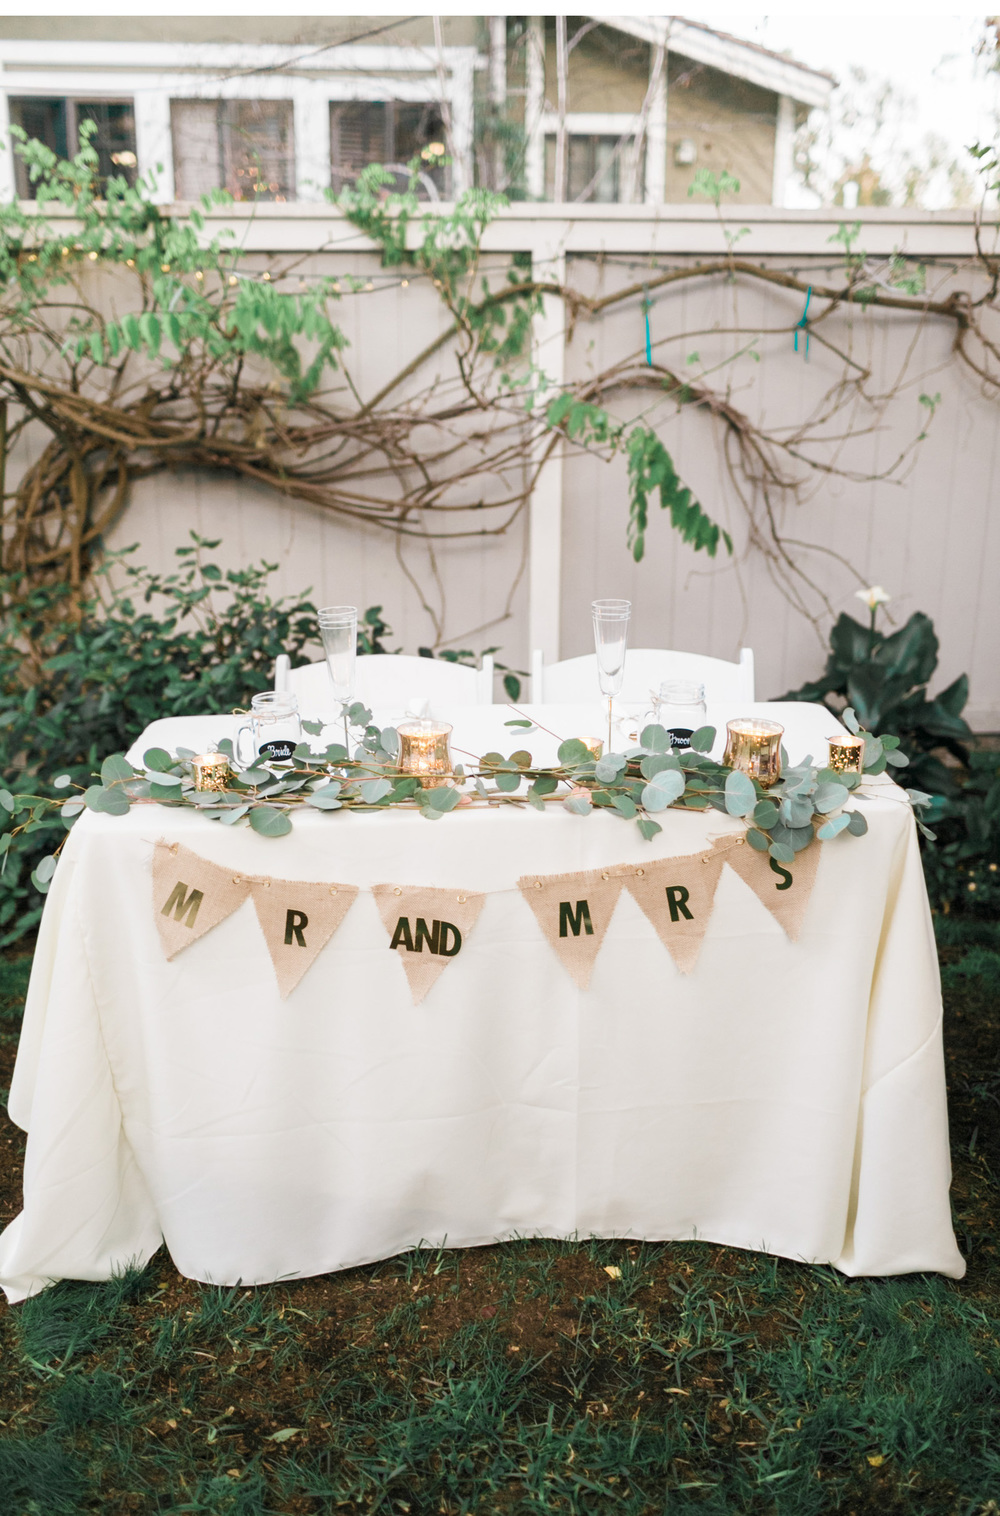 Natalie-Schutt-Photography-Backyard-Wedding-_04.jpg